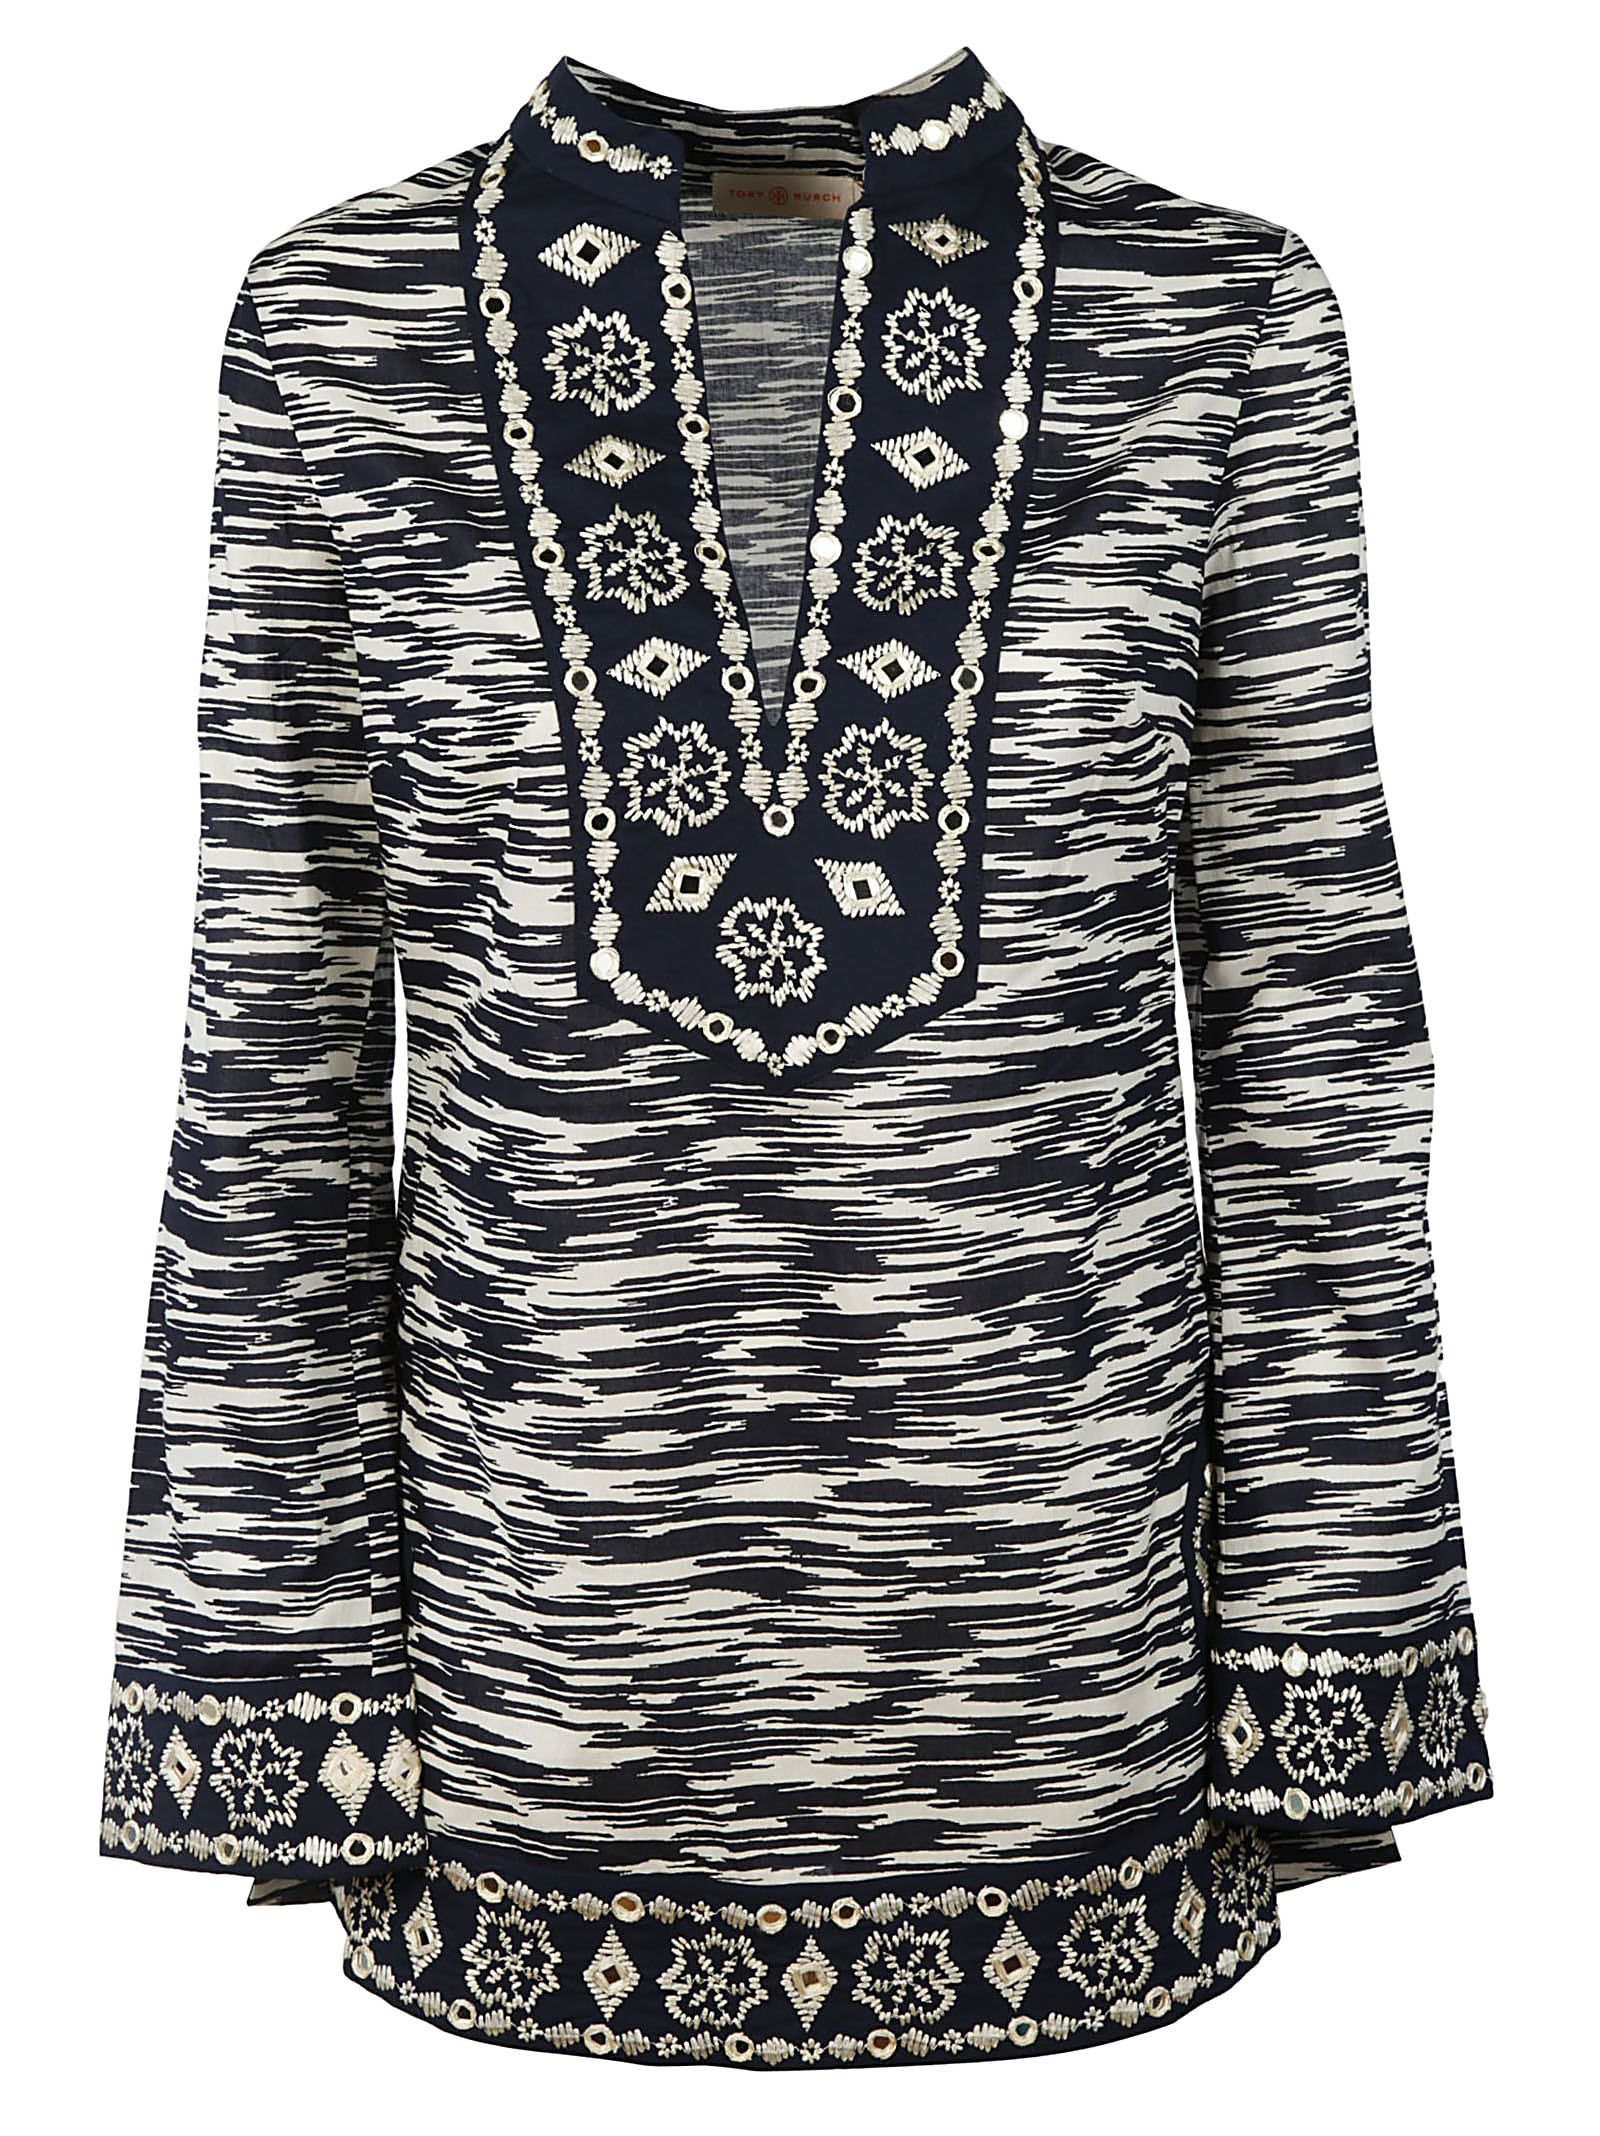 Tory Burch Embellished Tunic Top